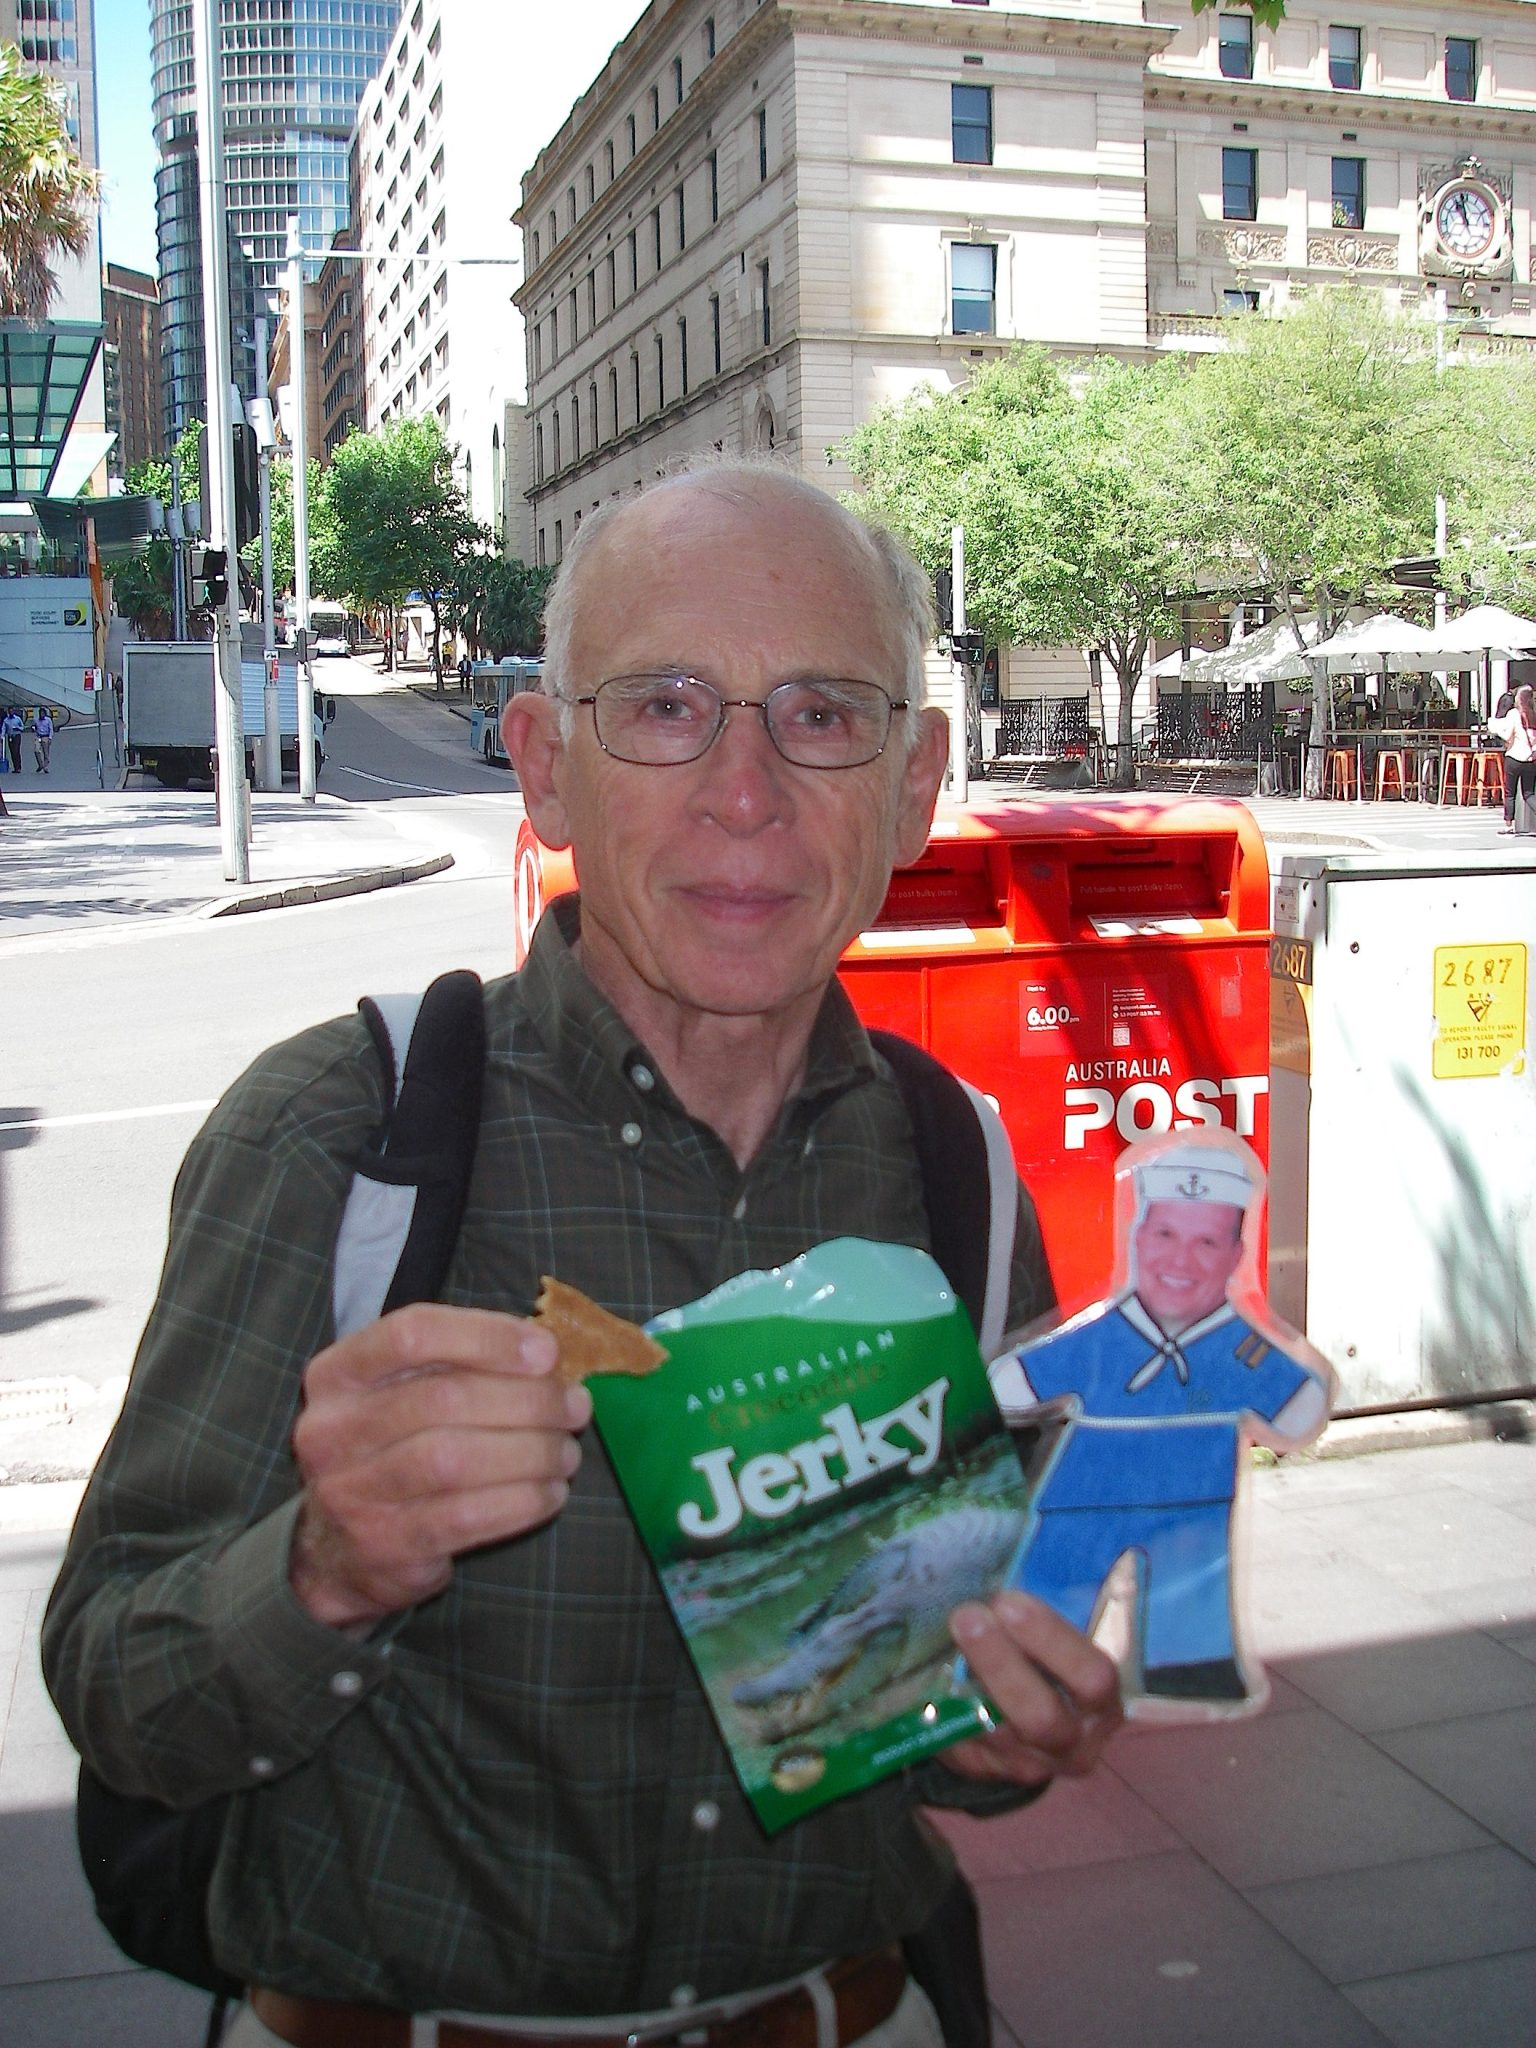 42. Flat Mr. Davis and Jeff eat crocodile jerkey in Sydney